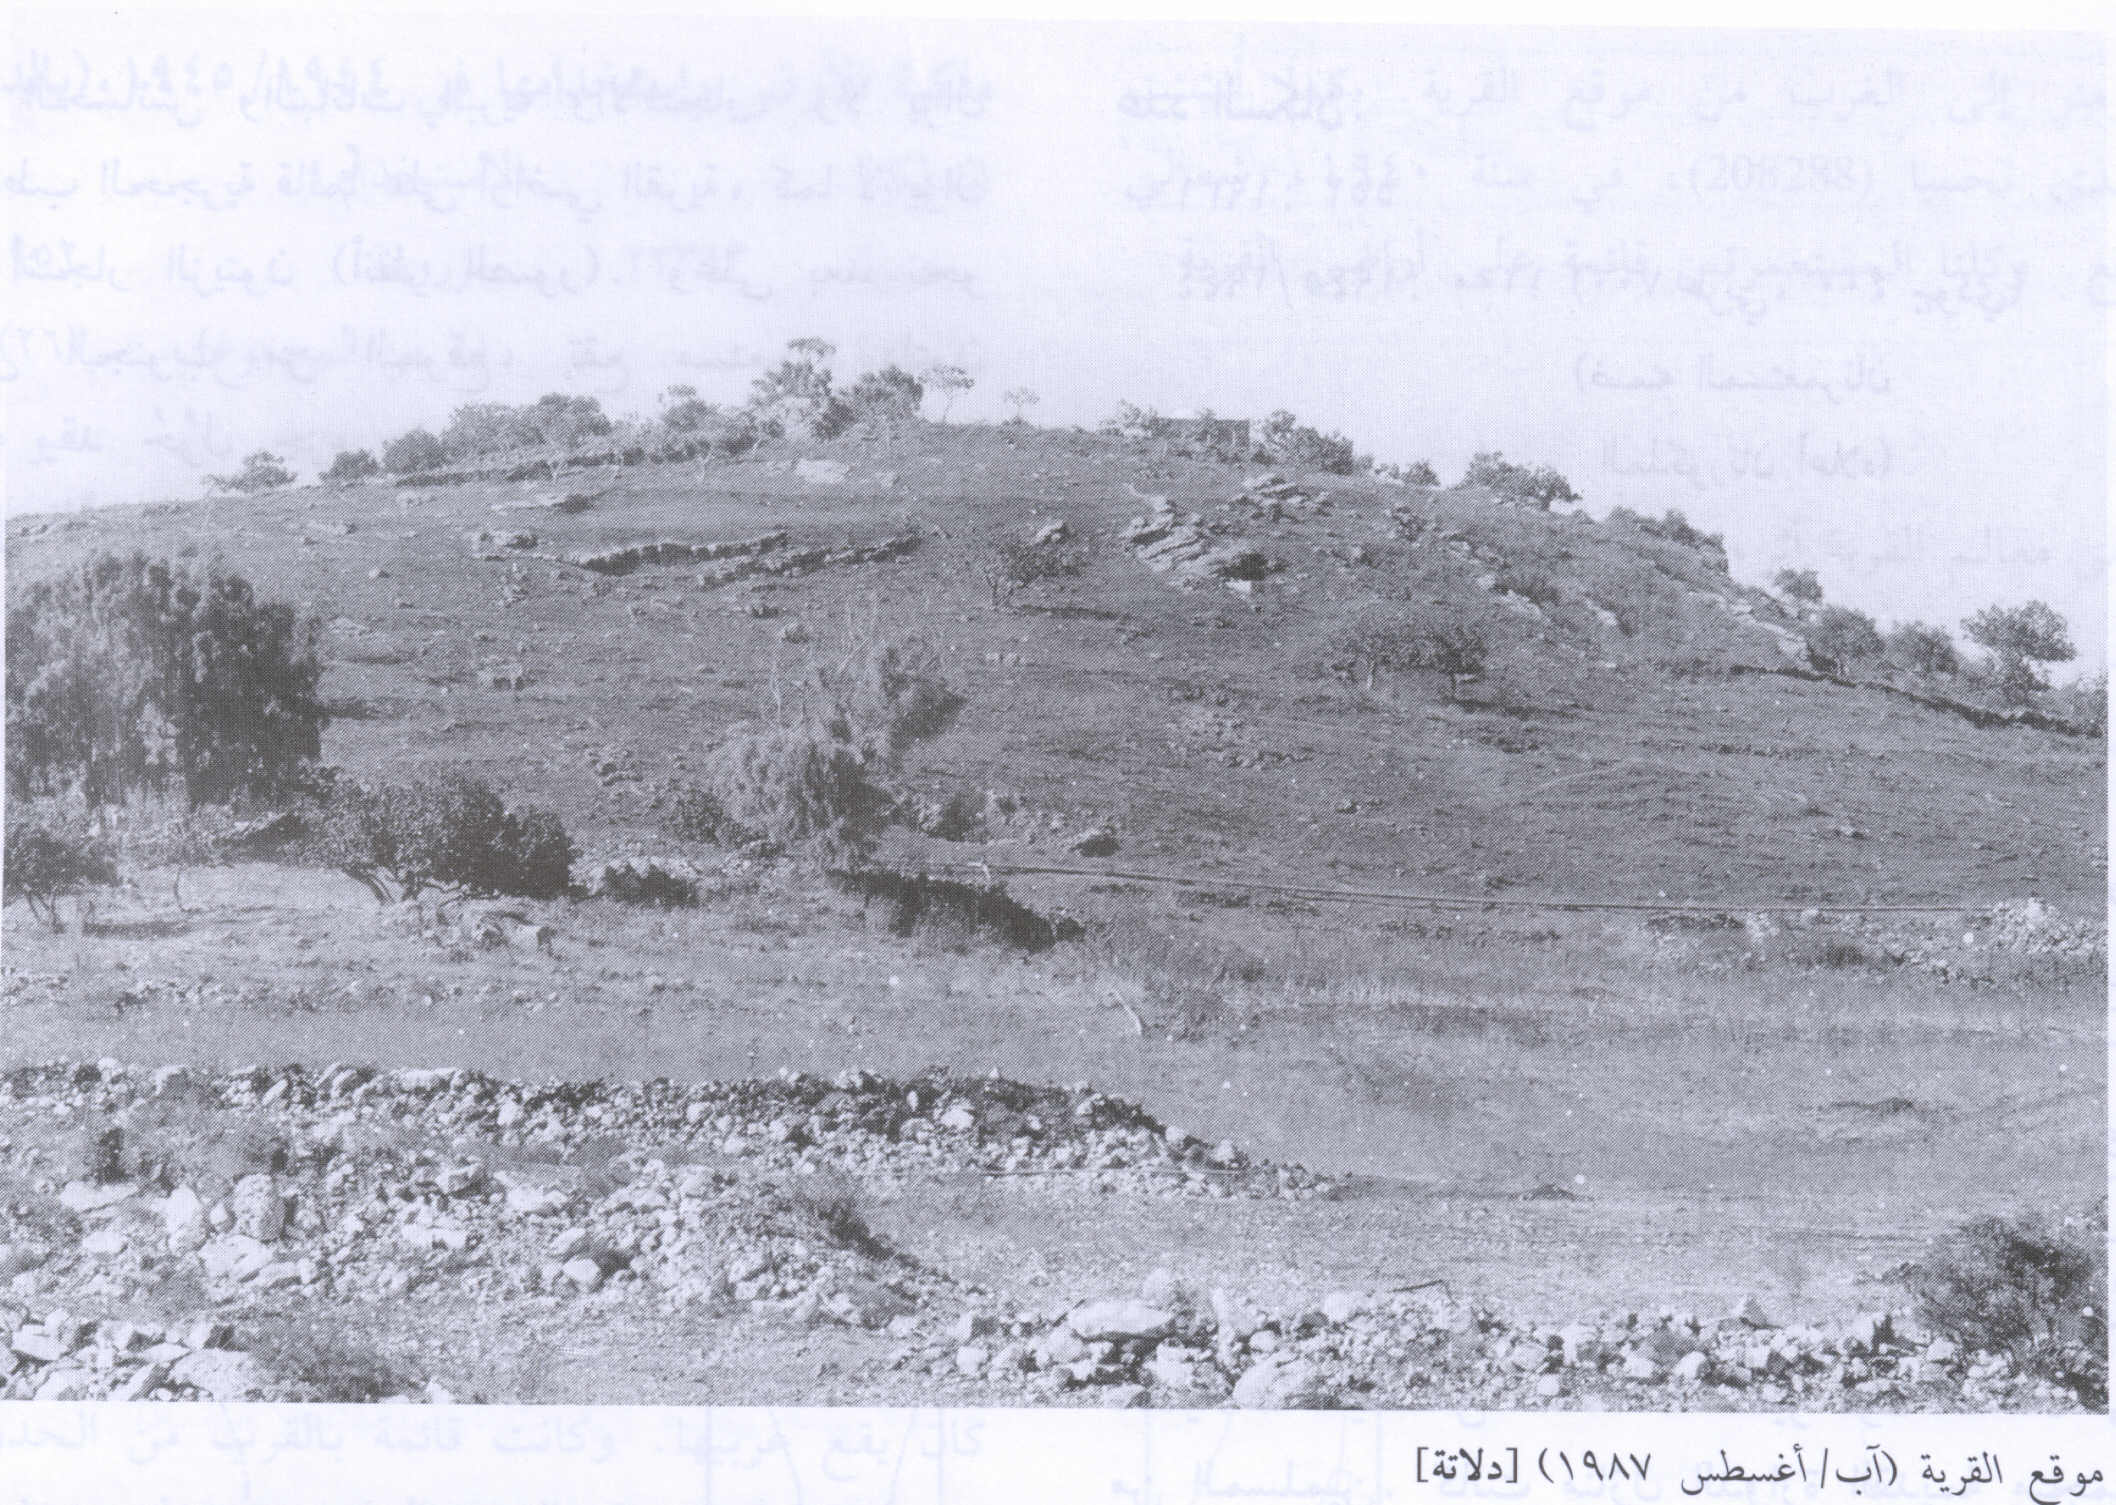 Village Site And Some Rubble, 1987